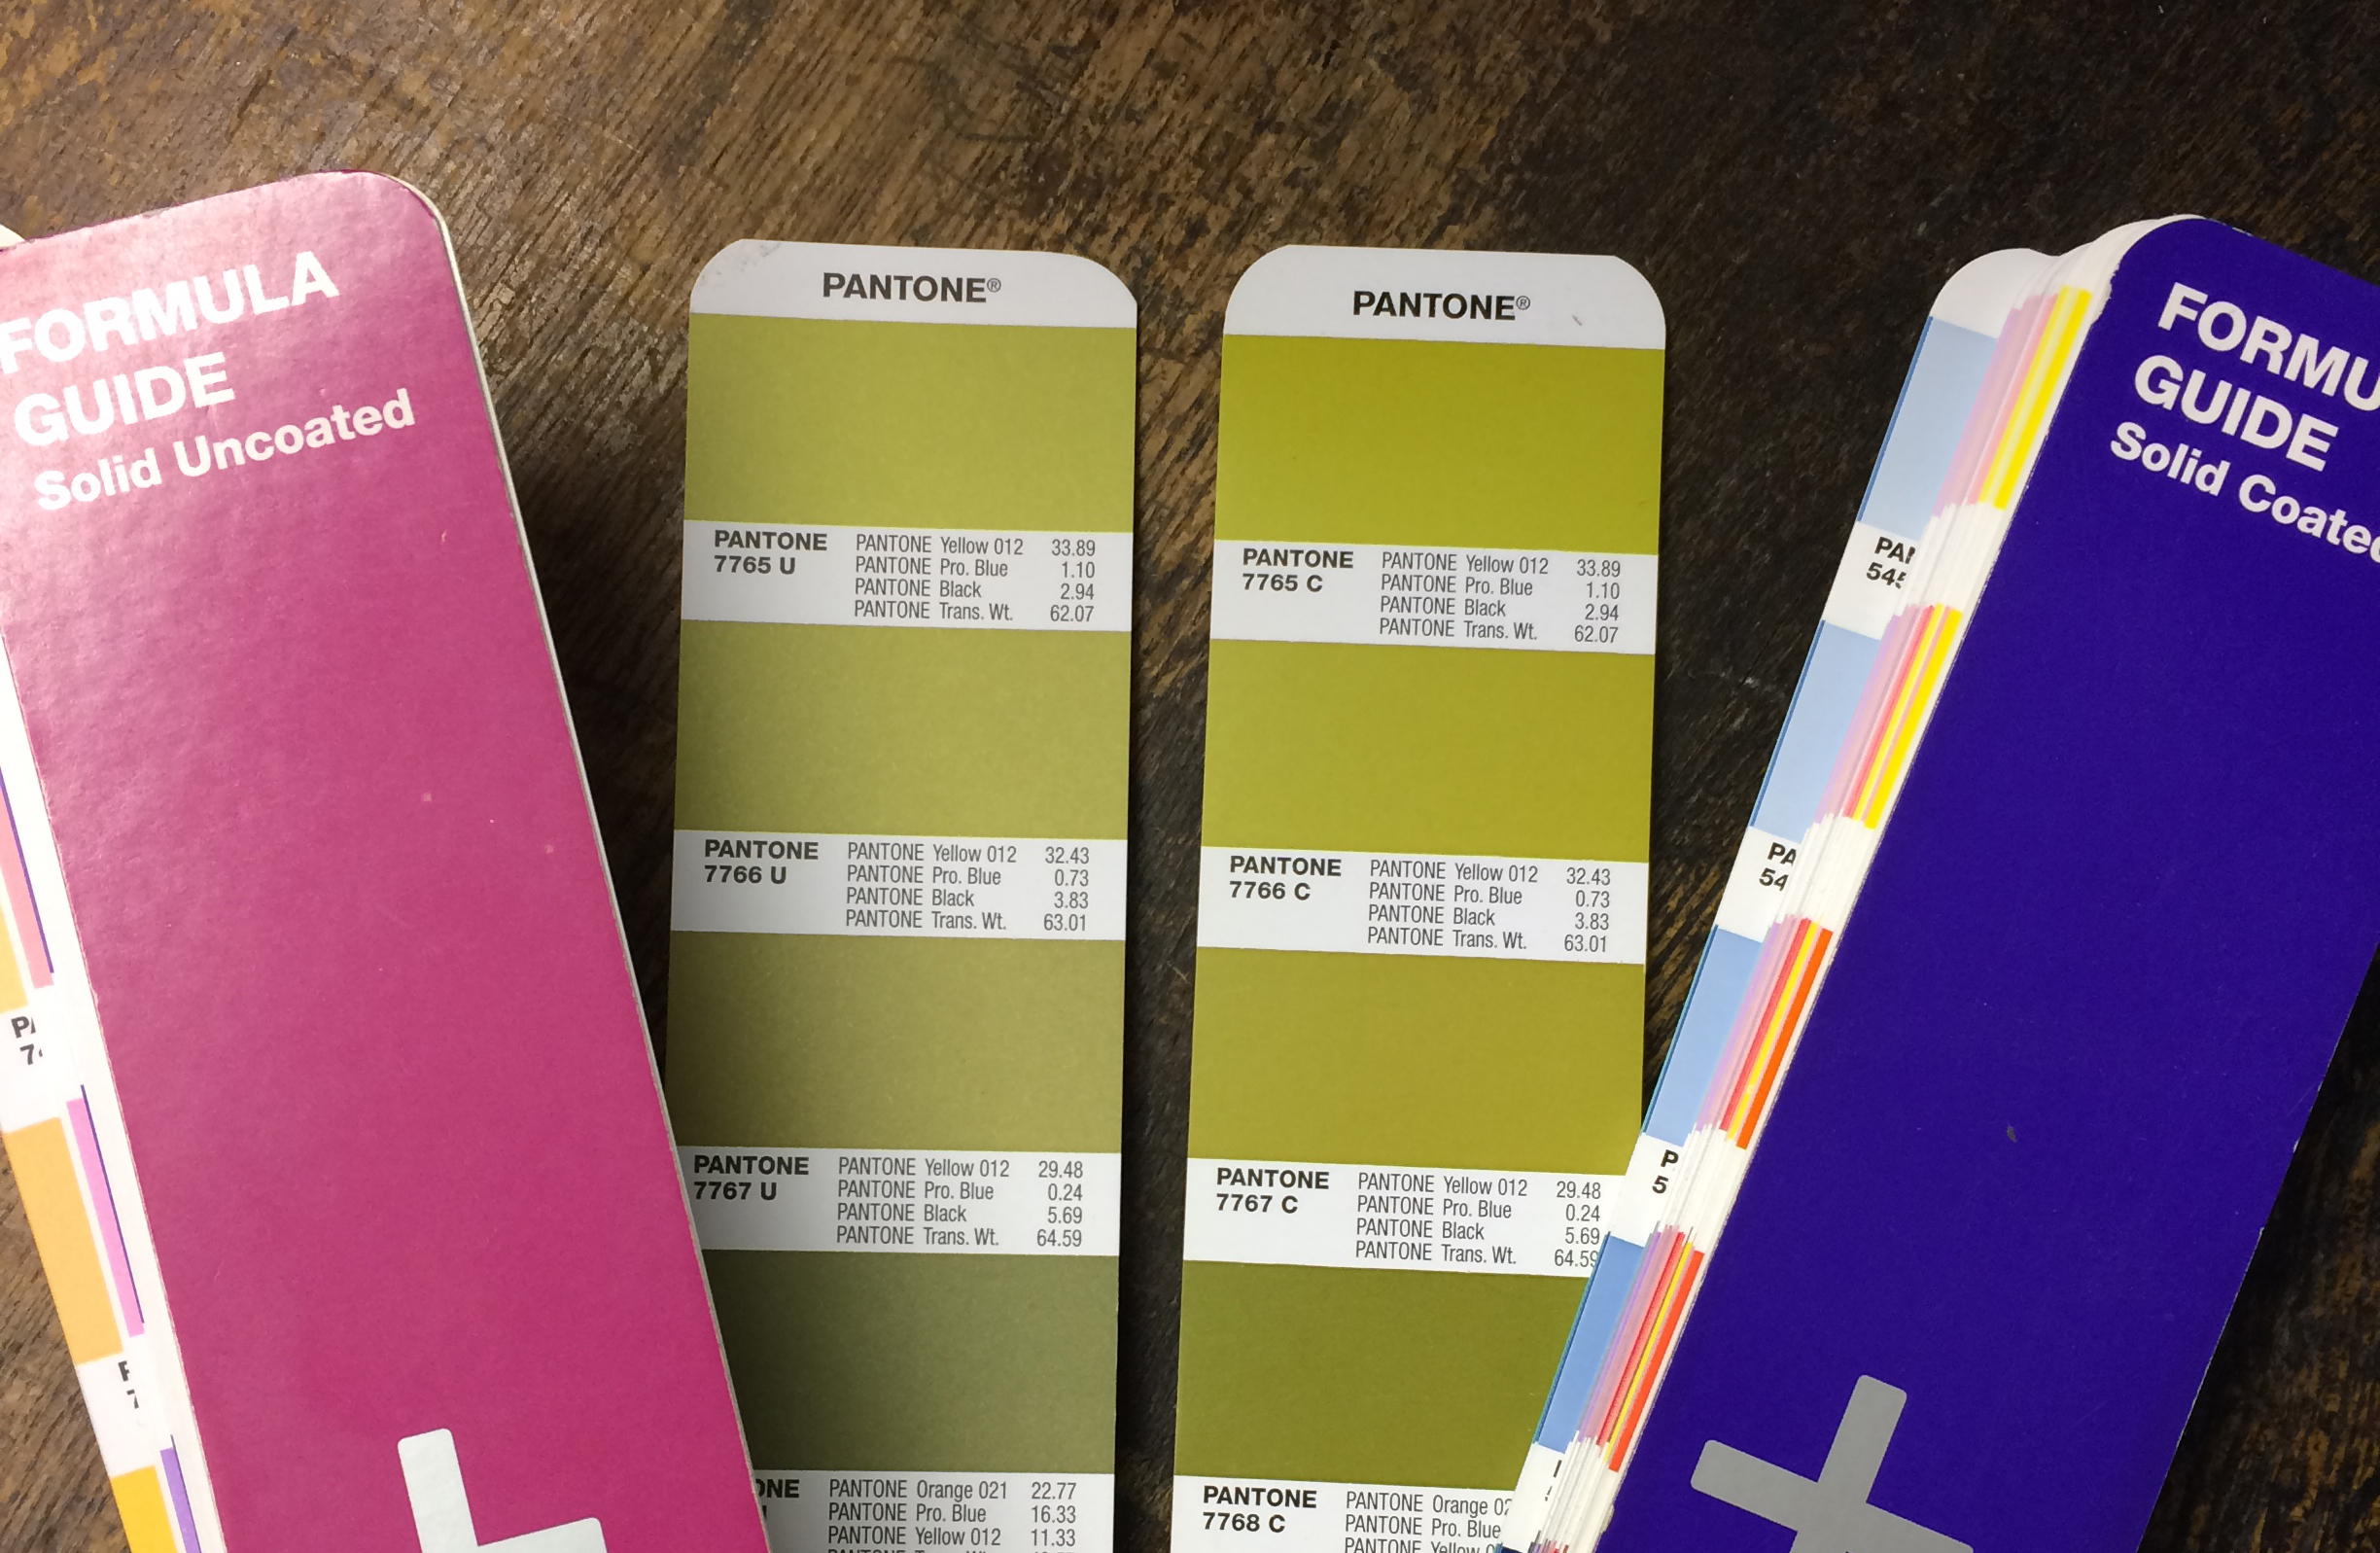 Pantone Coated vs Uncoated.jpg